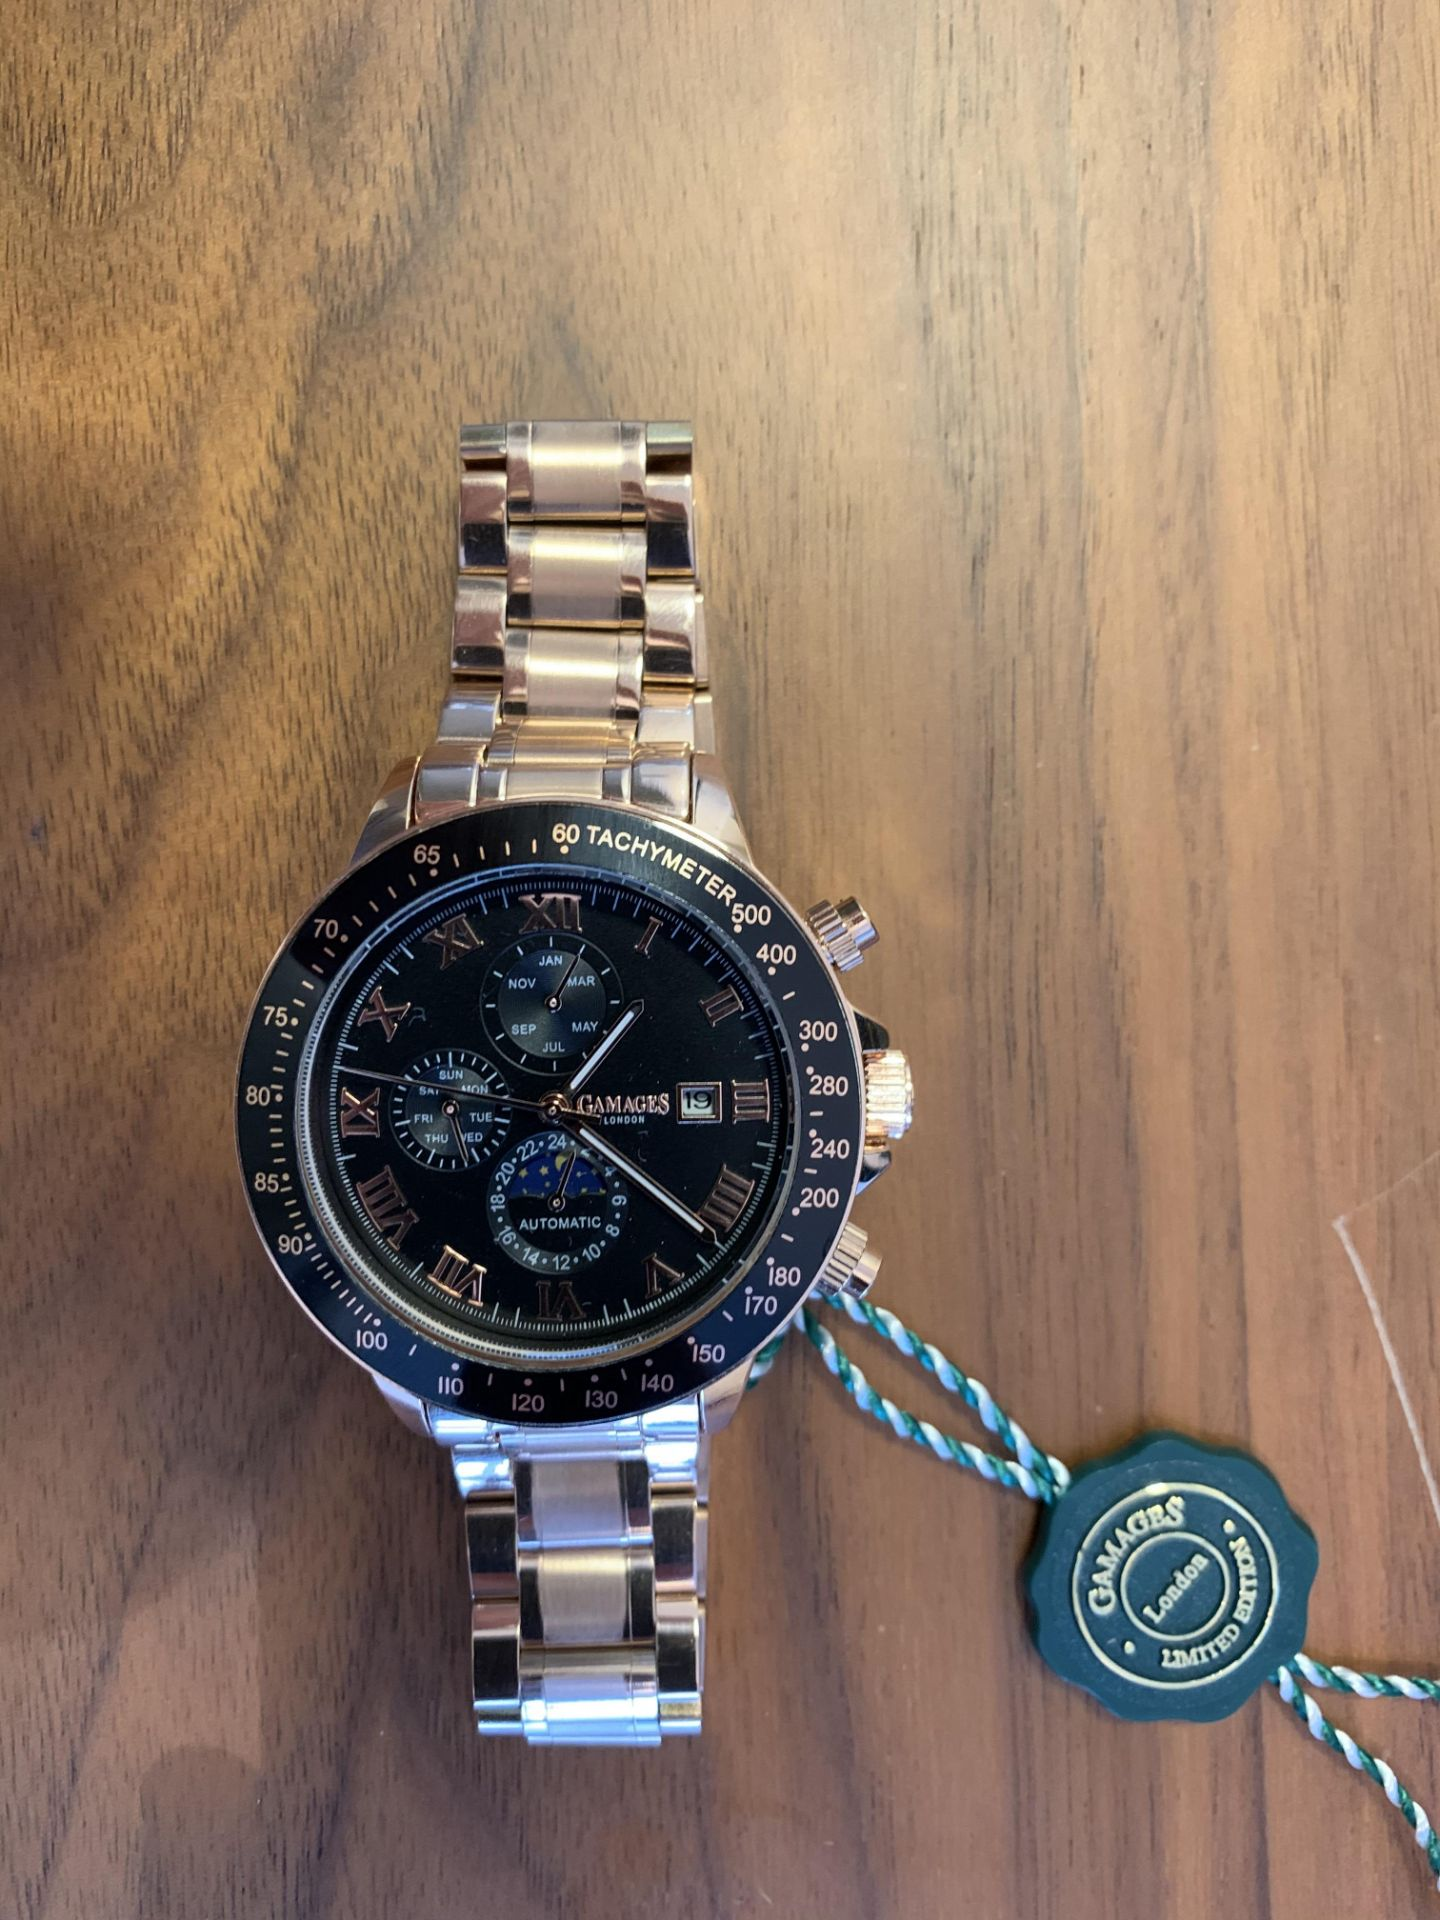 Ltd Edition Hand Assembled Gamages Race Calendar Automatic Rose – 5 Year Warranty & Free Delivery - Image 2 of 5